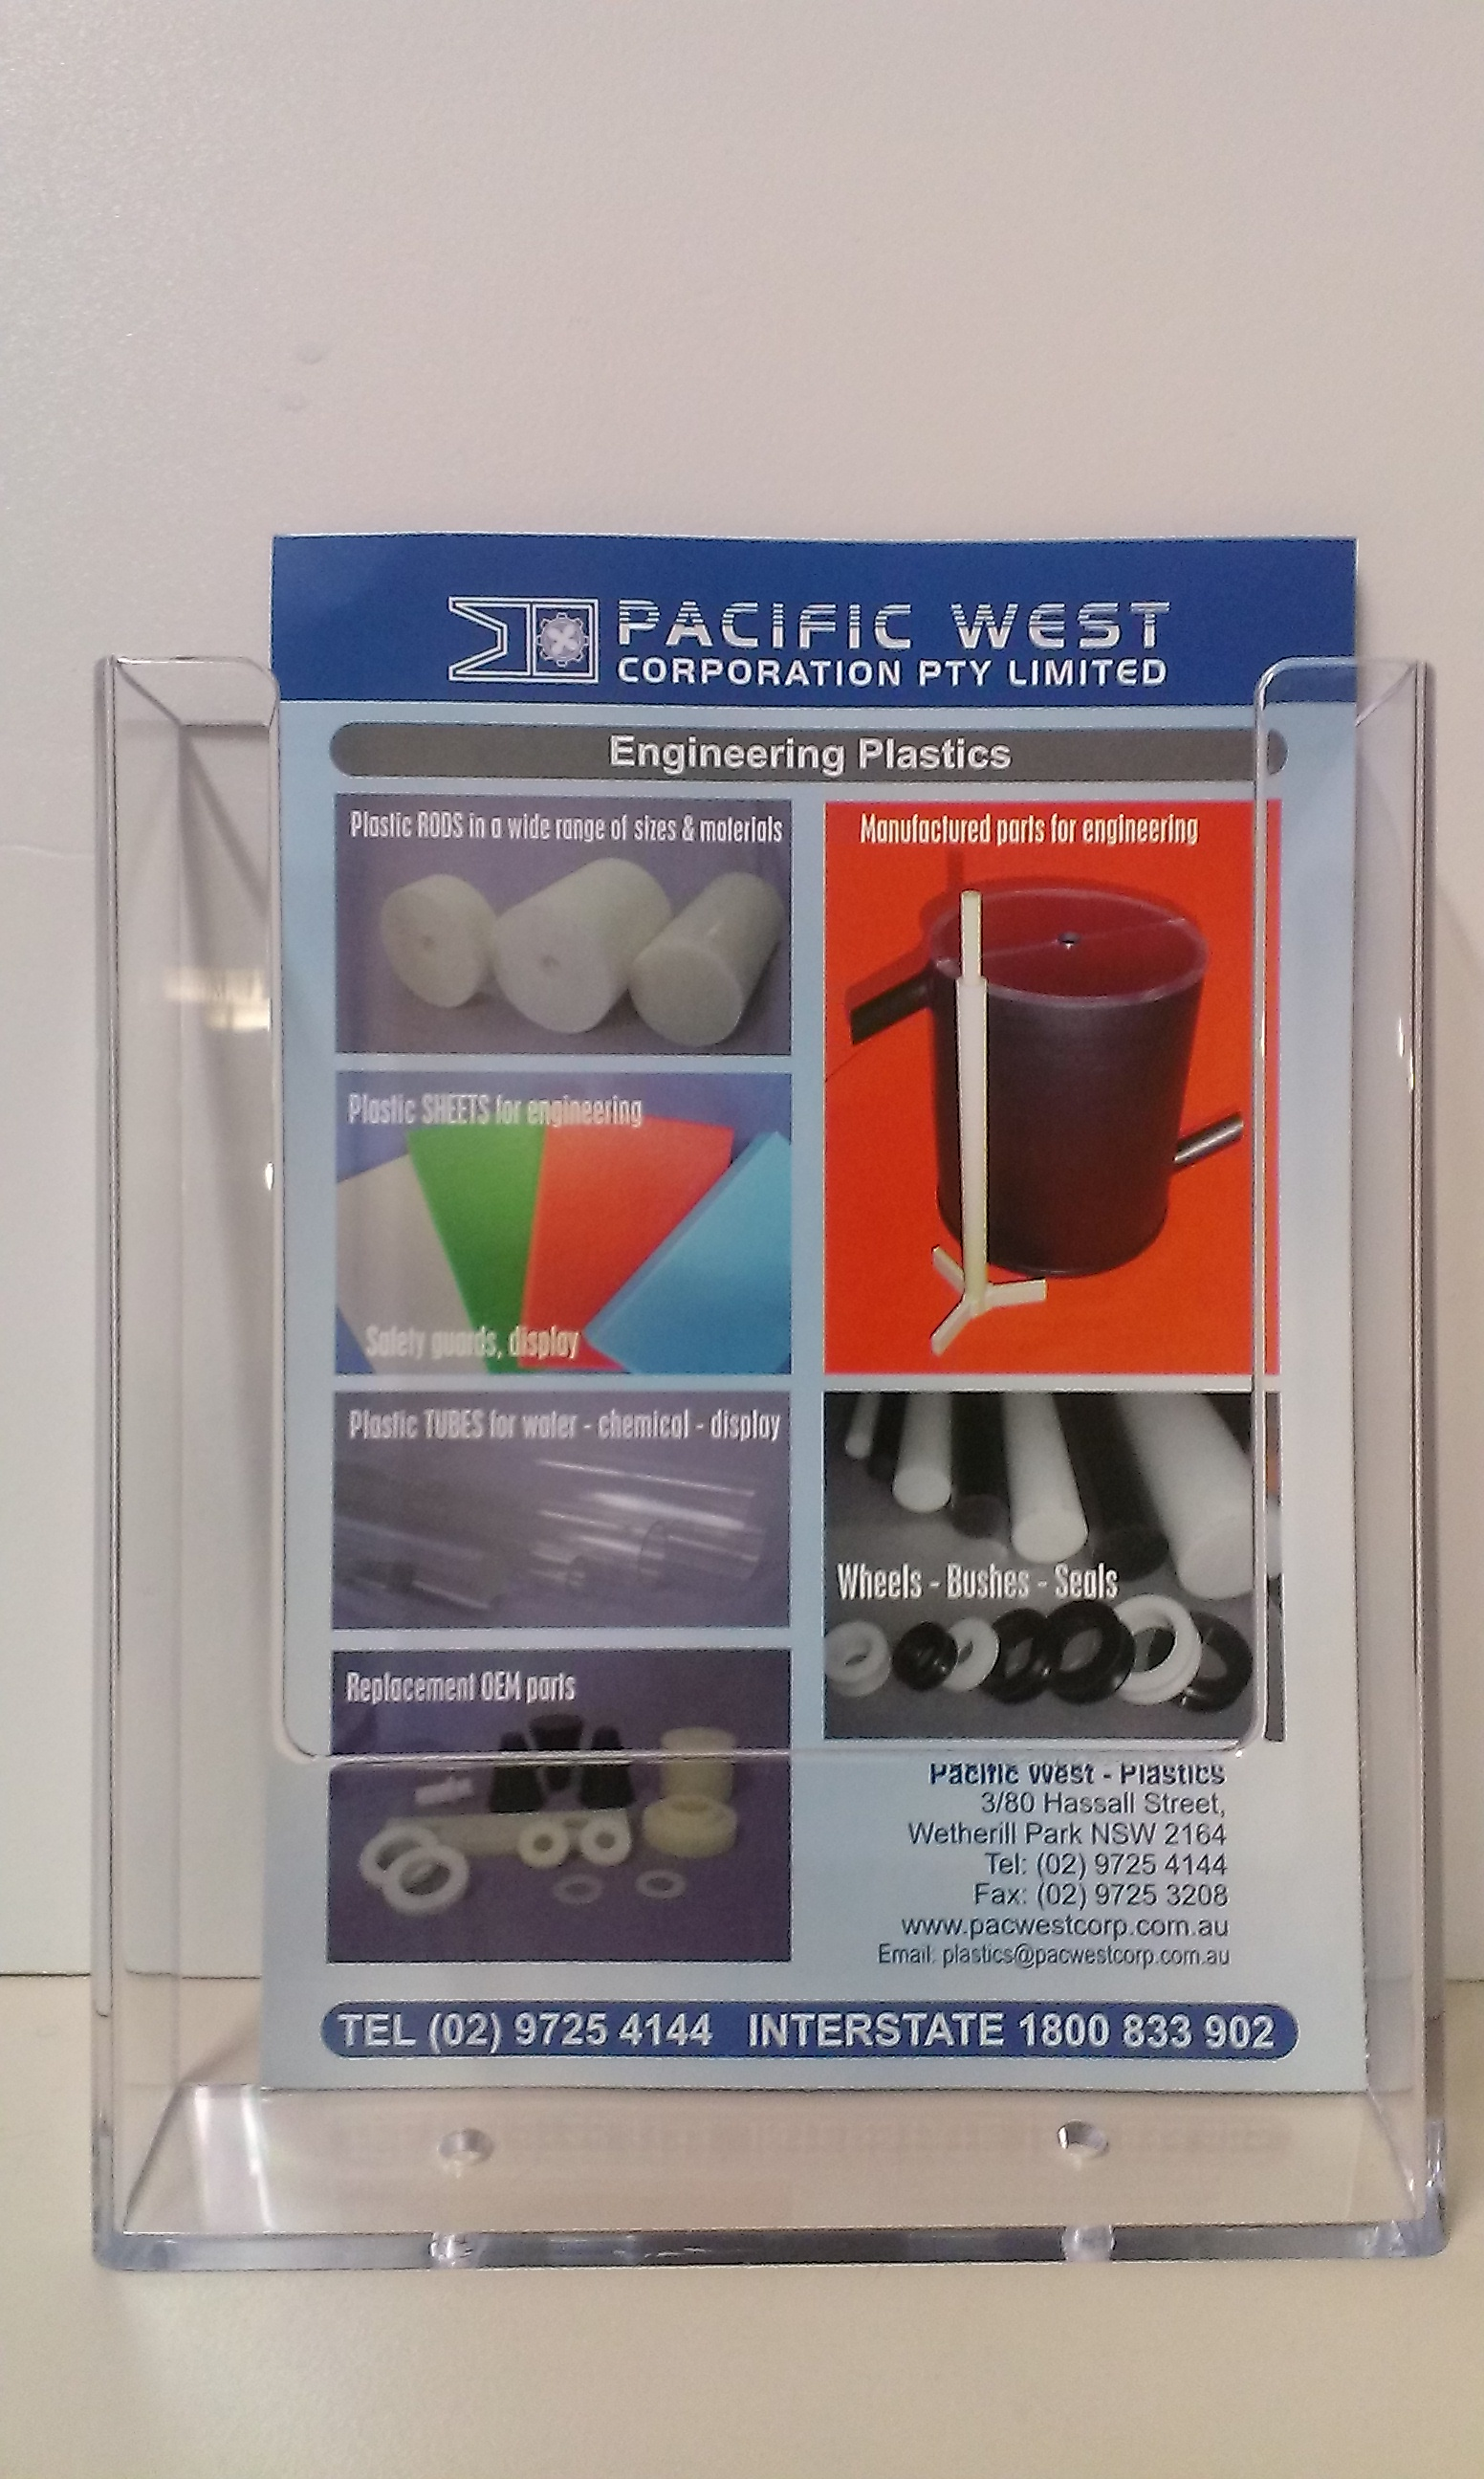 holder stand wall index brochure and display sign holders broker dl rack mount tall